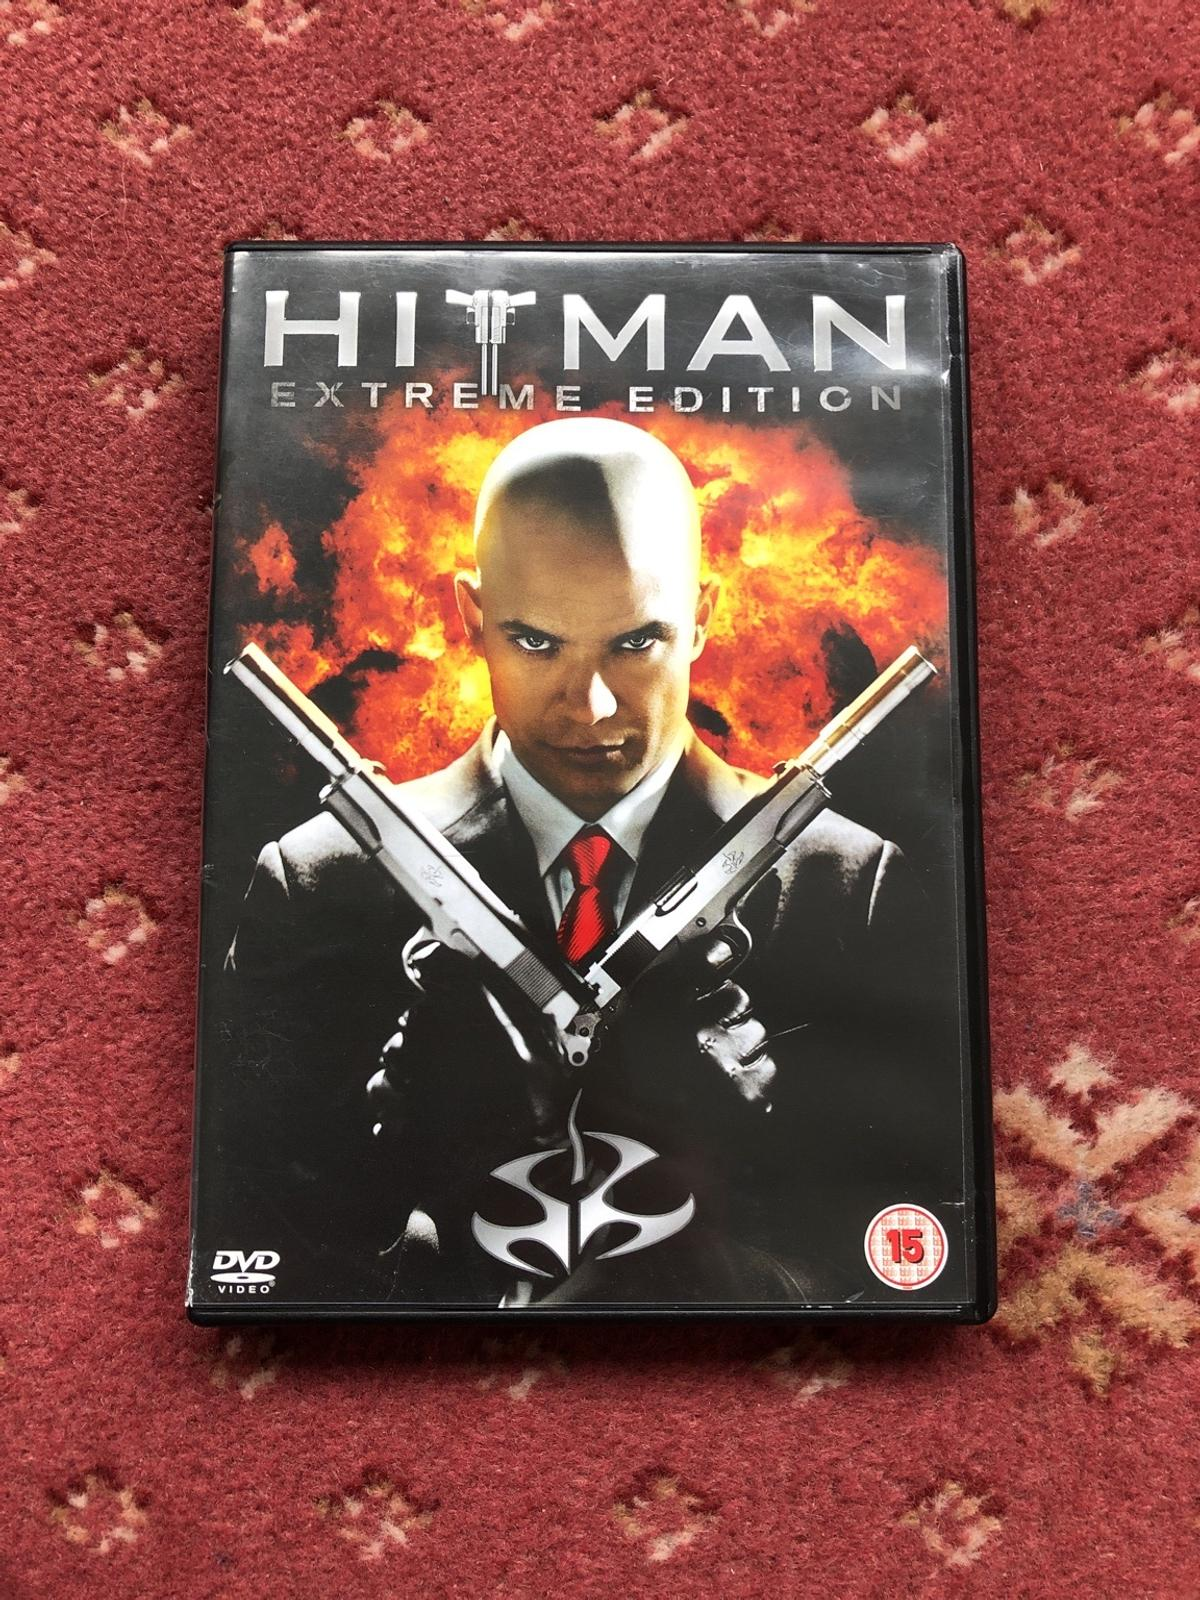 Hitman extreme edition DVD  Collection Can deliver locally Will mail for cost of postage